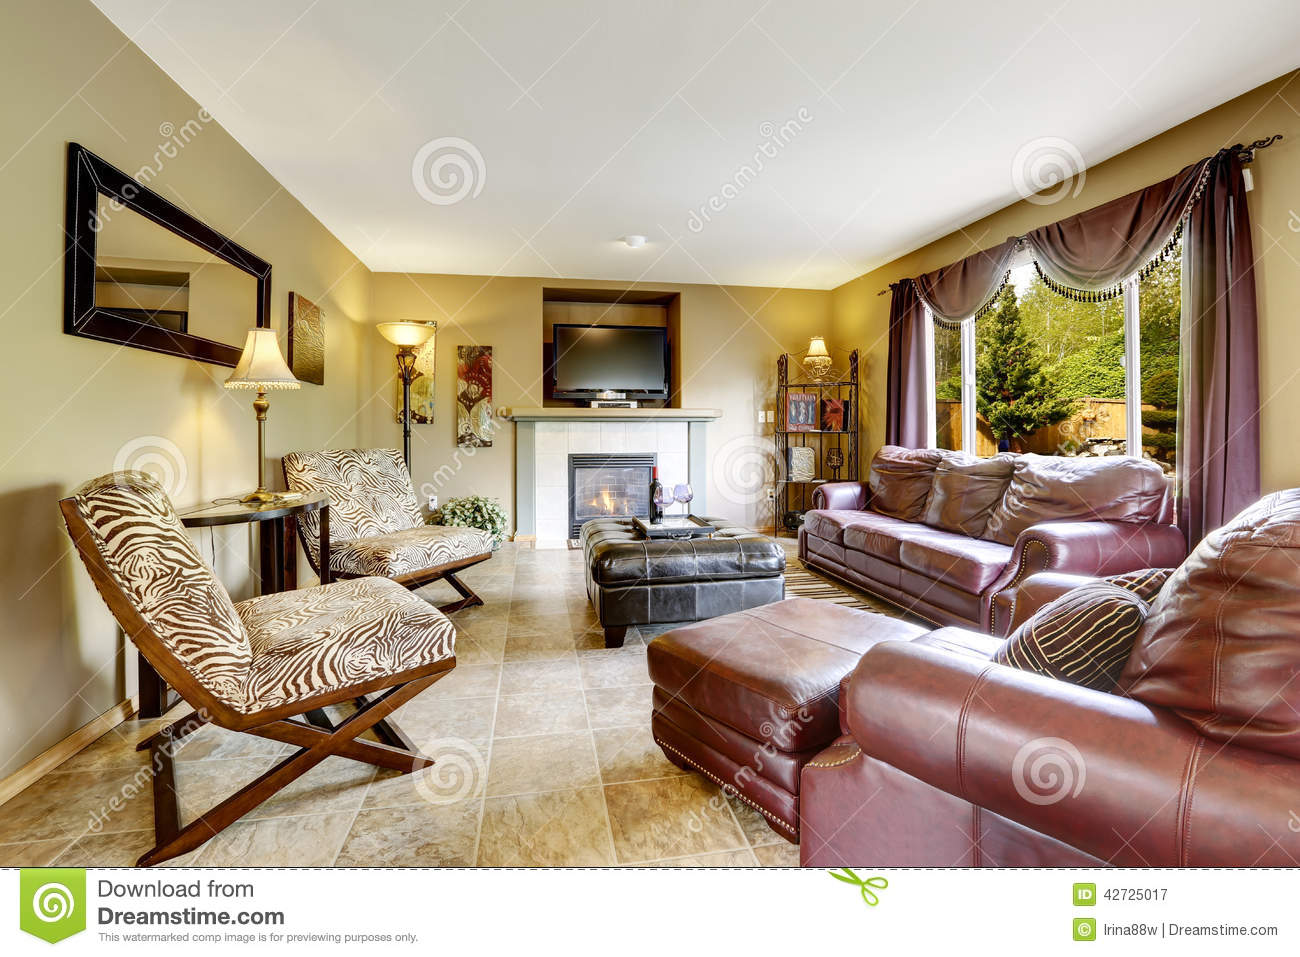 Luxury Living Room With Leather Furniture Set Stock Photo Image 42725017